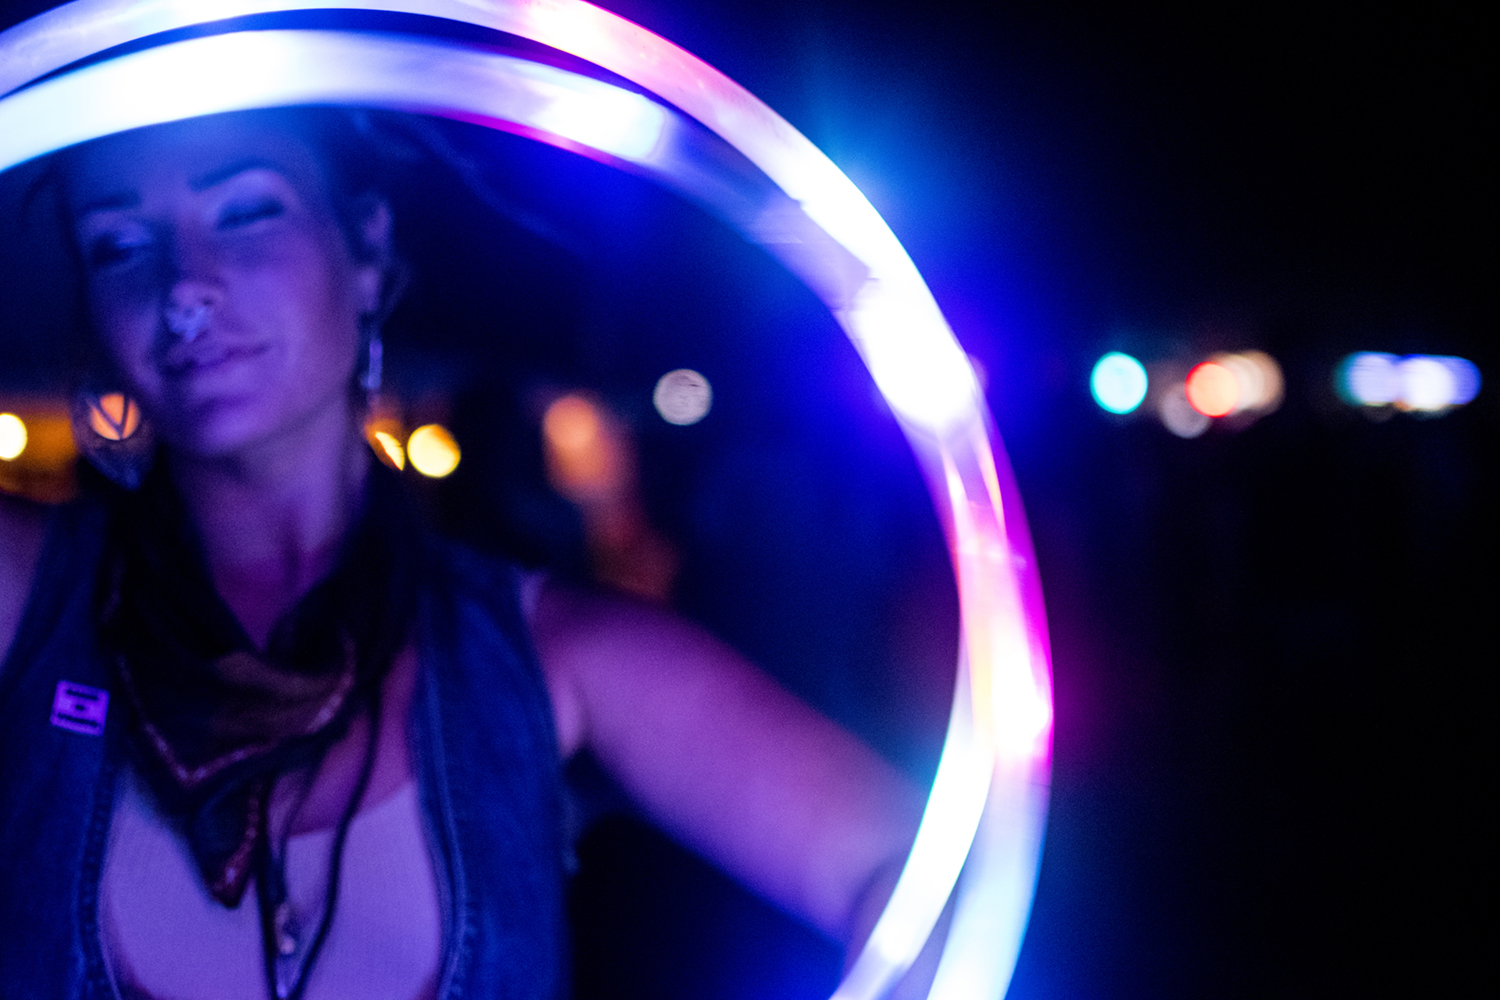 Audra Lewis dances with a glowing hula hoop on Friday Aug. 3, 2018. She lives in Minnesota but has attended the festival every year. This is Hinterland's fourth year. (Thomas A. Stewart/The Daily Iowan)